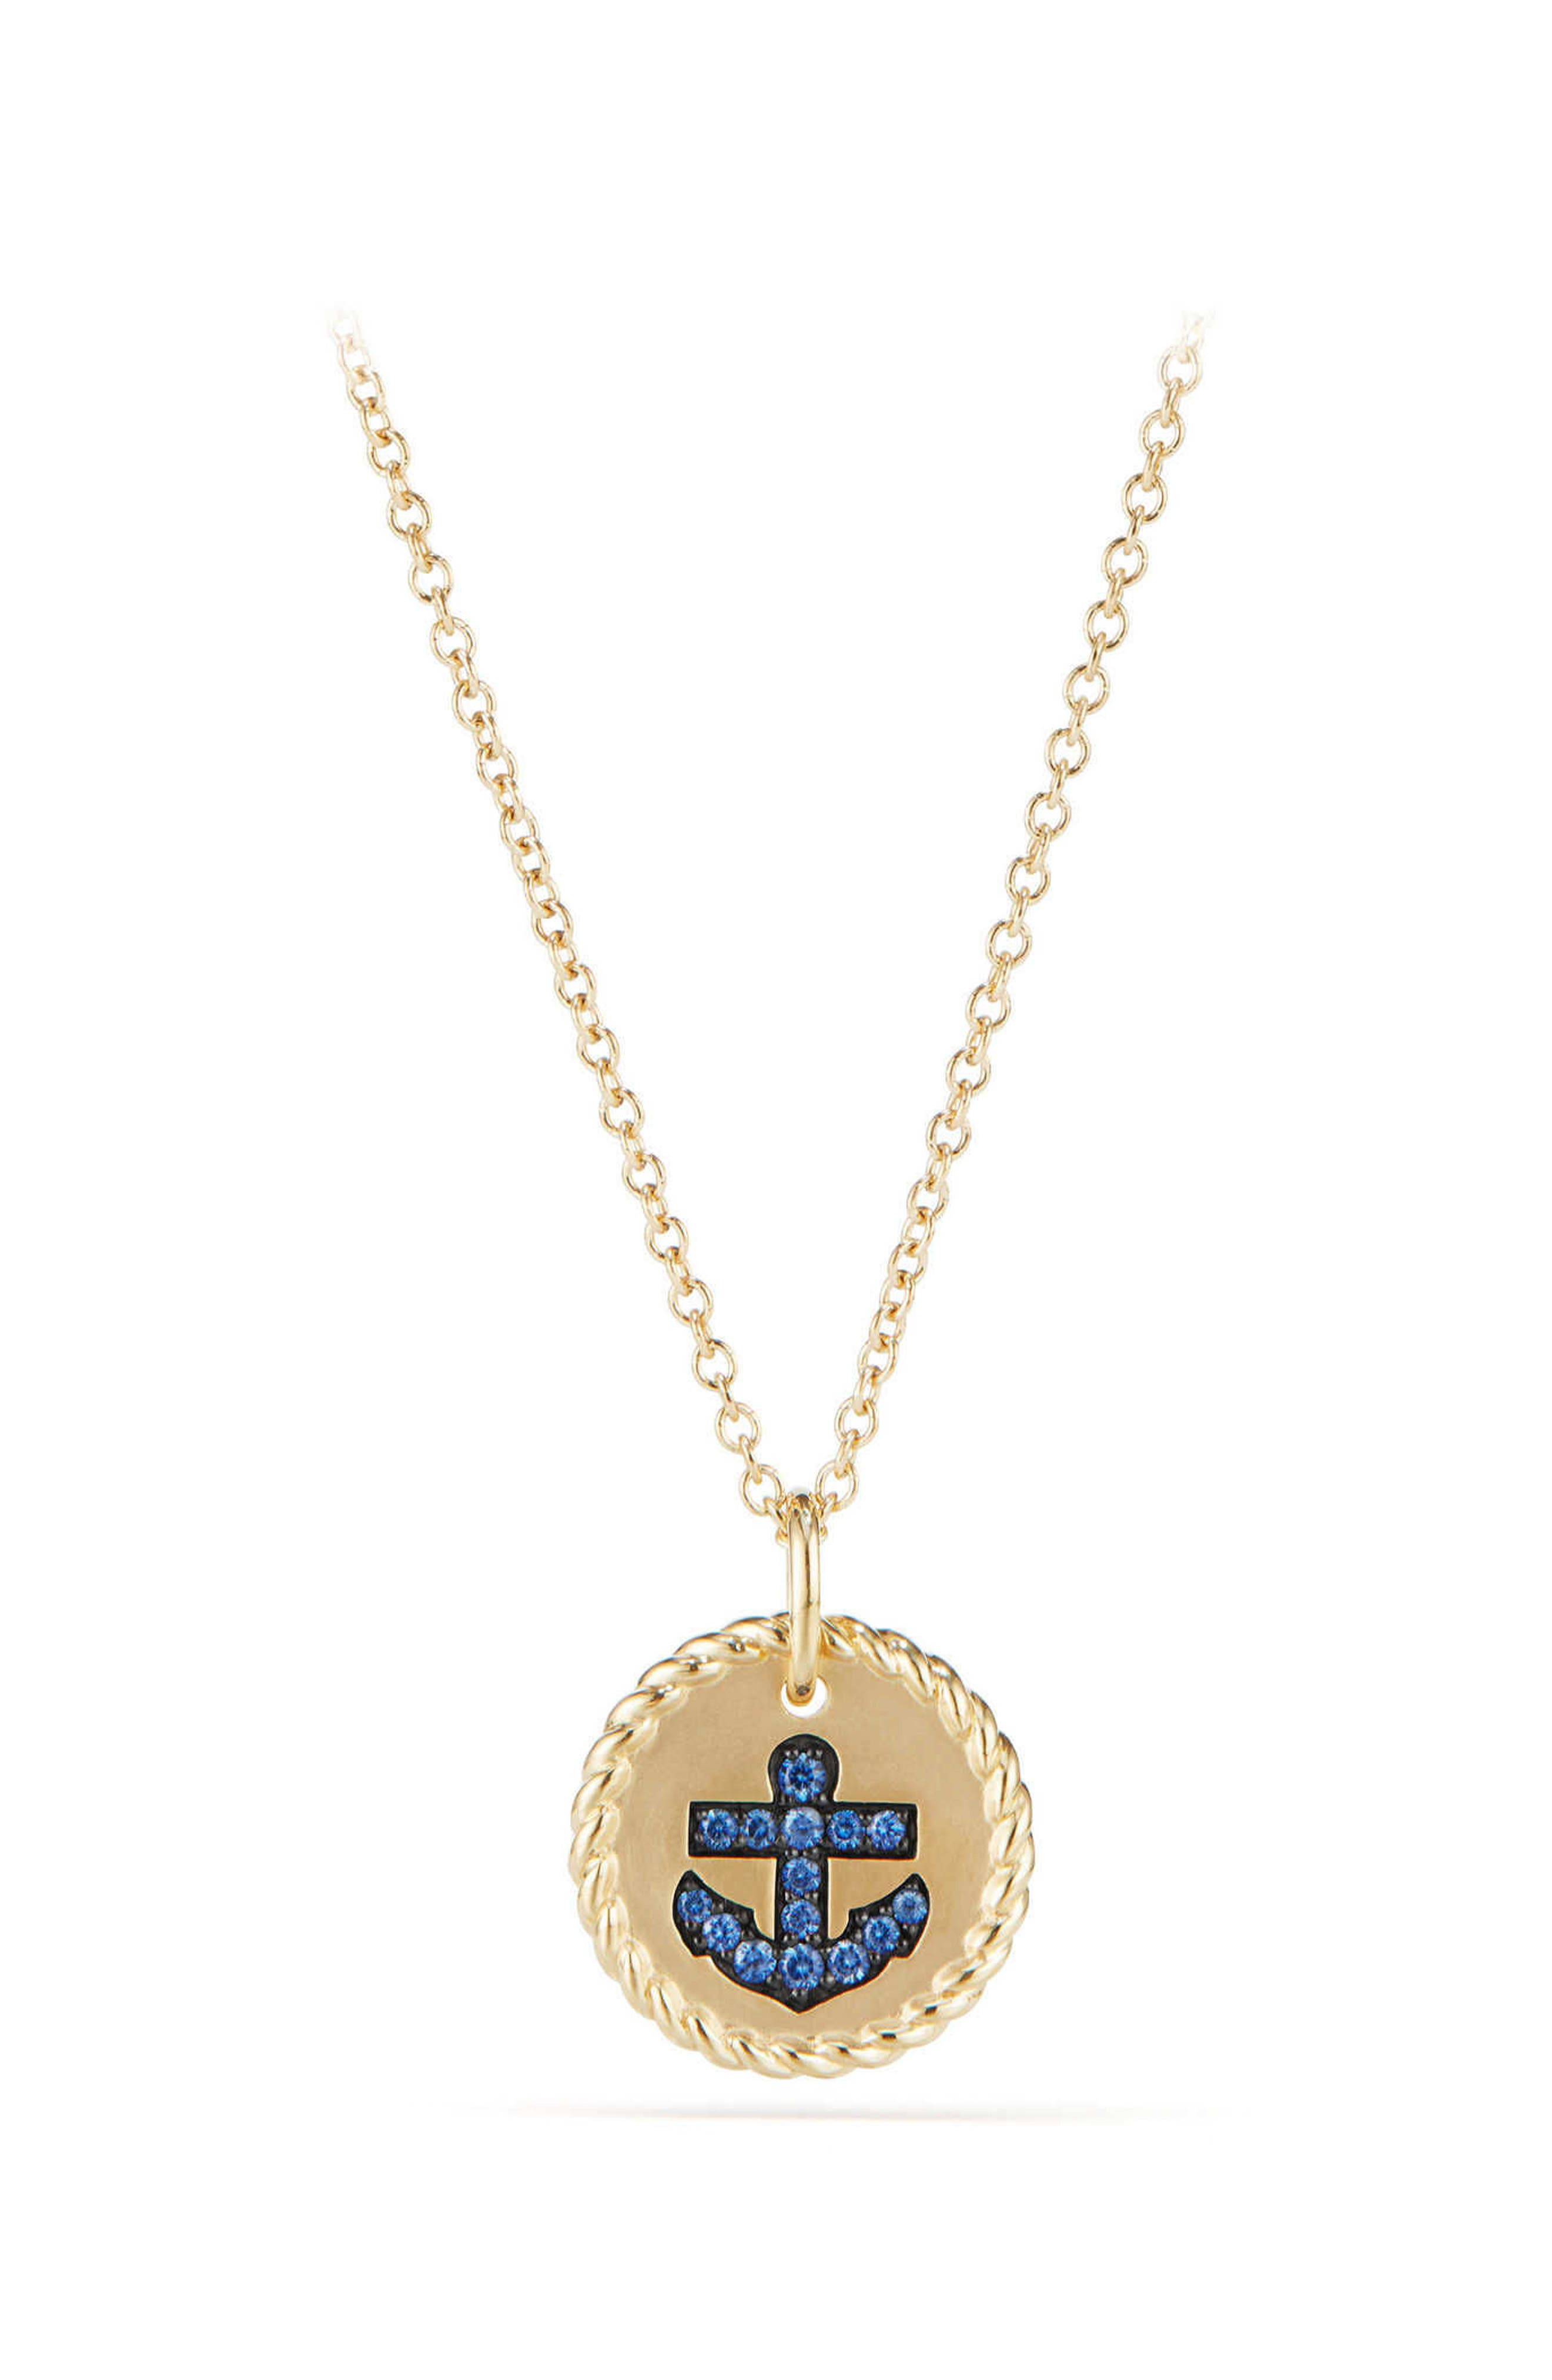 Cable Collectibles Anchor Necklace with Light Blue Sapphires in 18K Gold,                             Main thumbnail 1, color,                             Gold/ Light Blue Sapphire